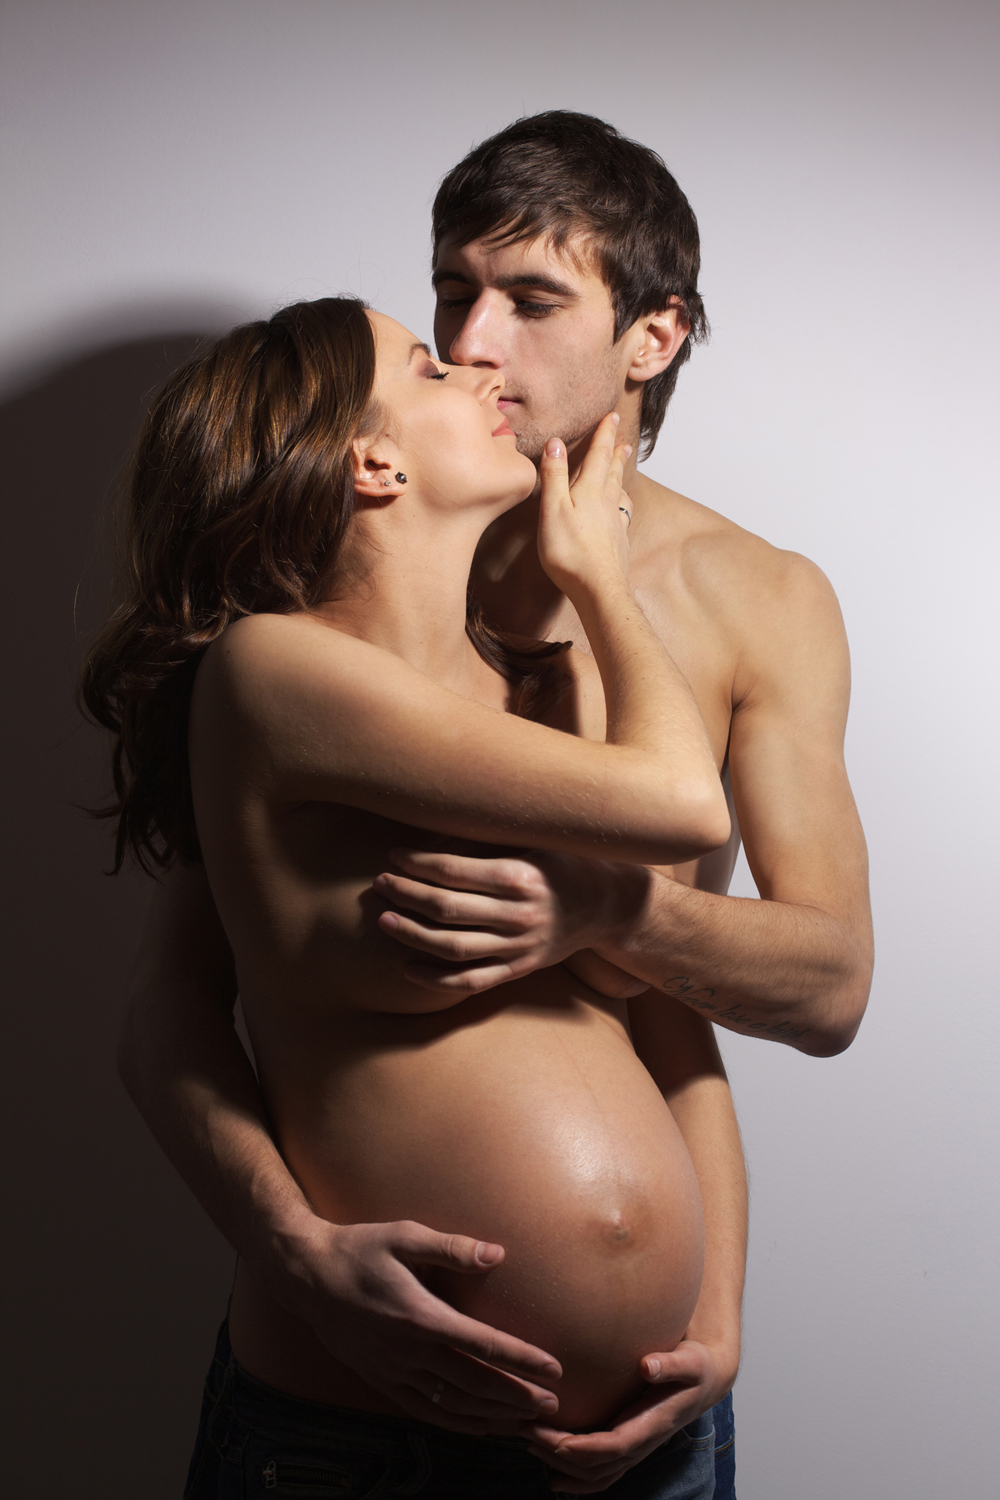 pics of anal sex with pregnant women